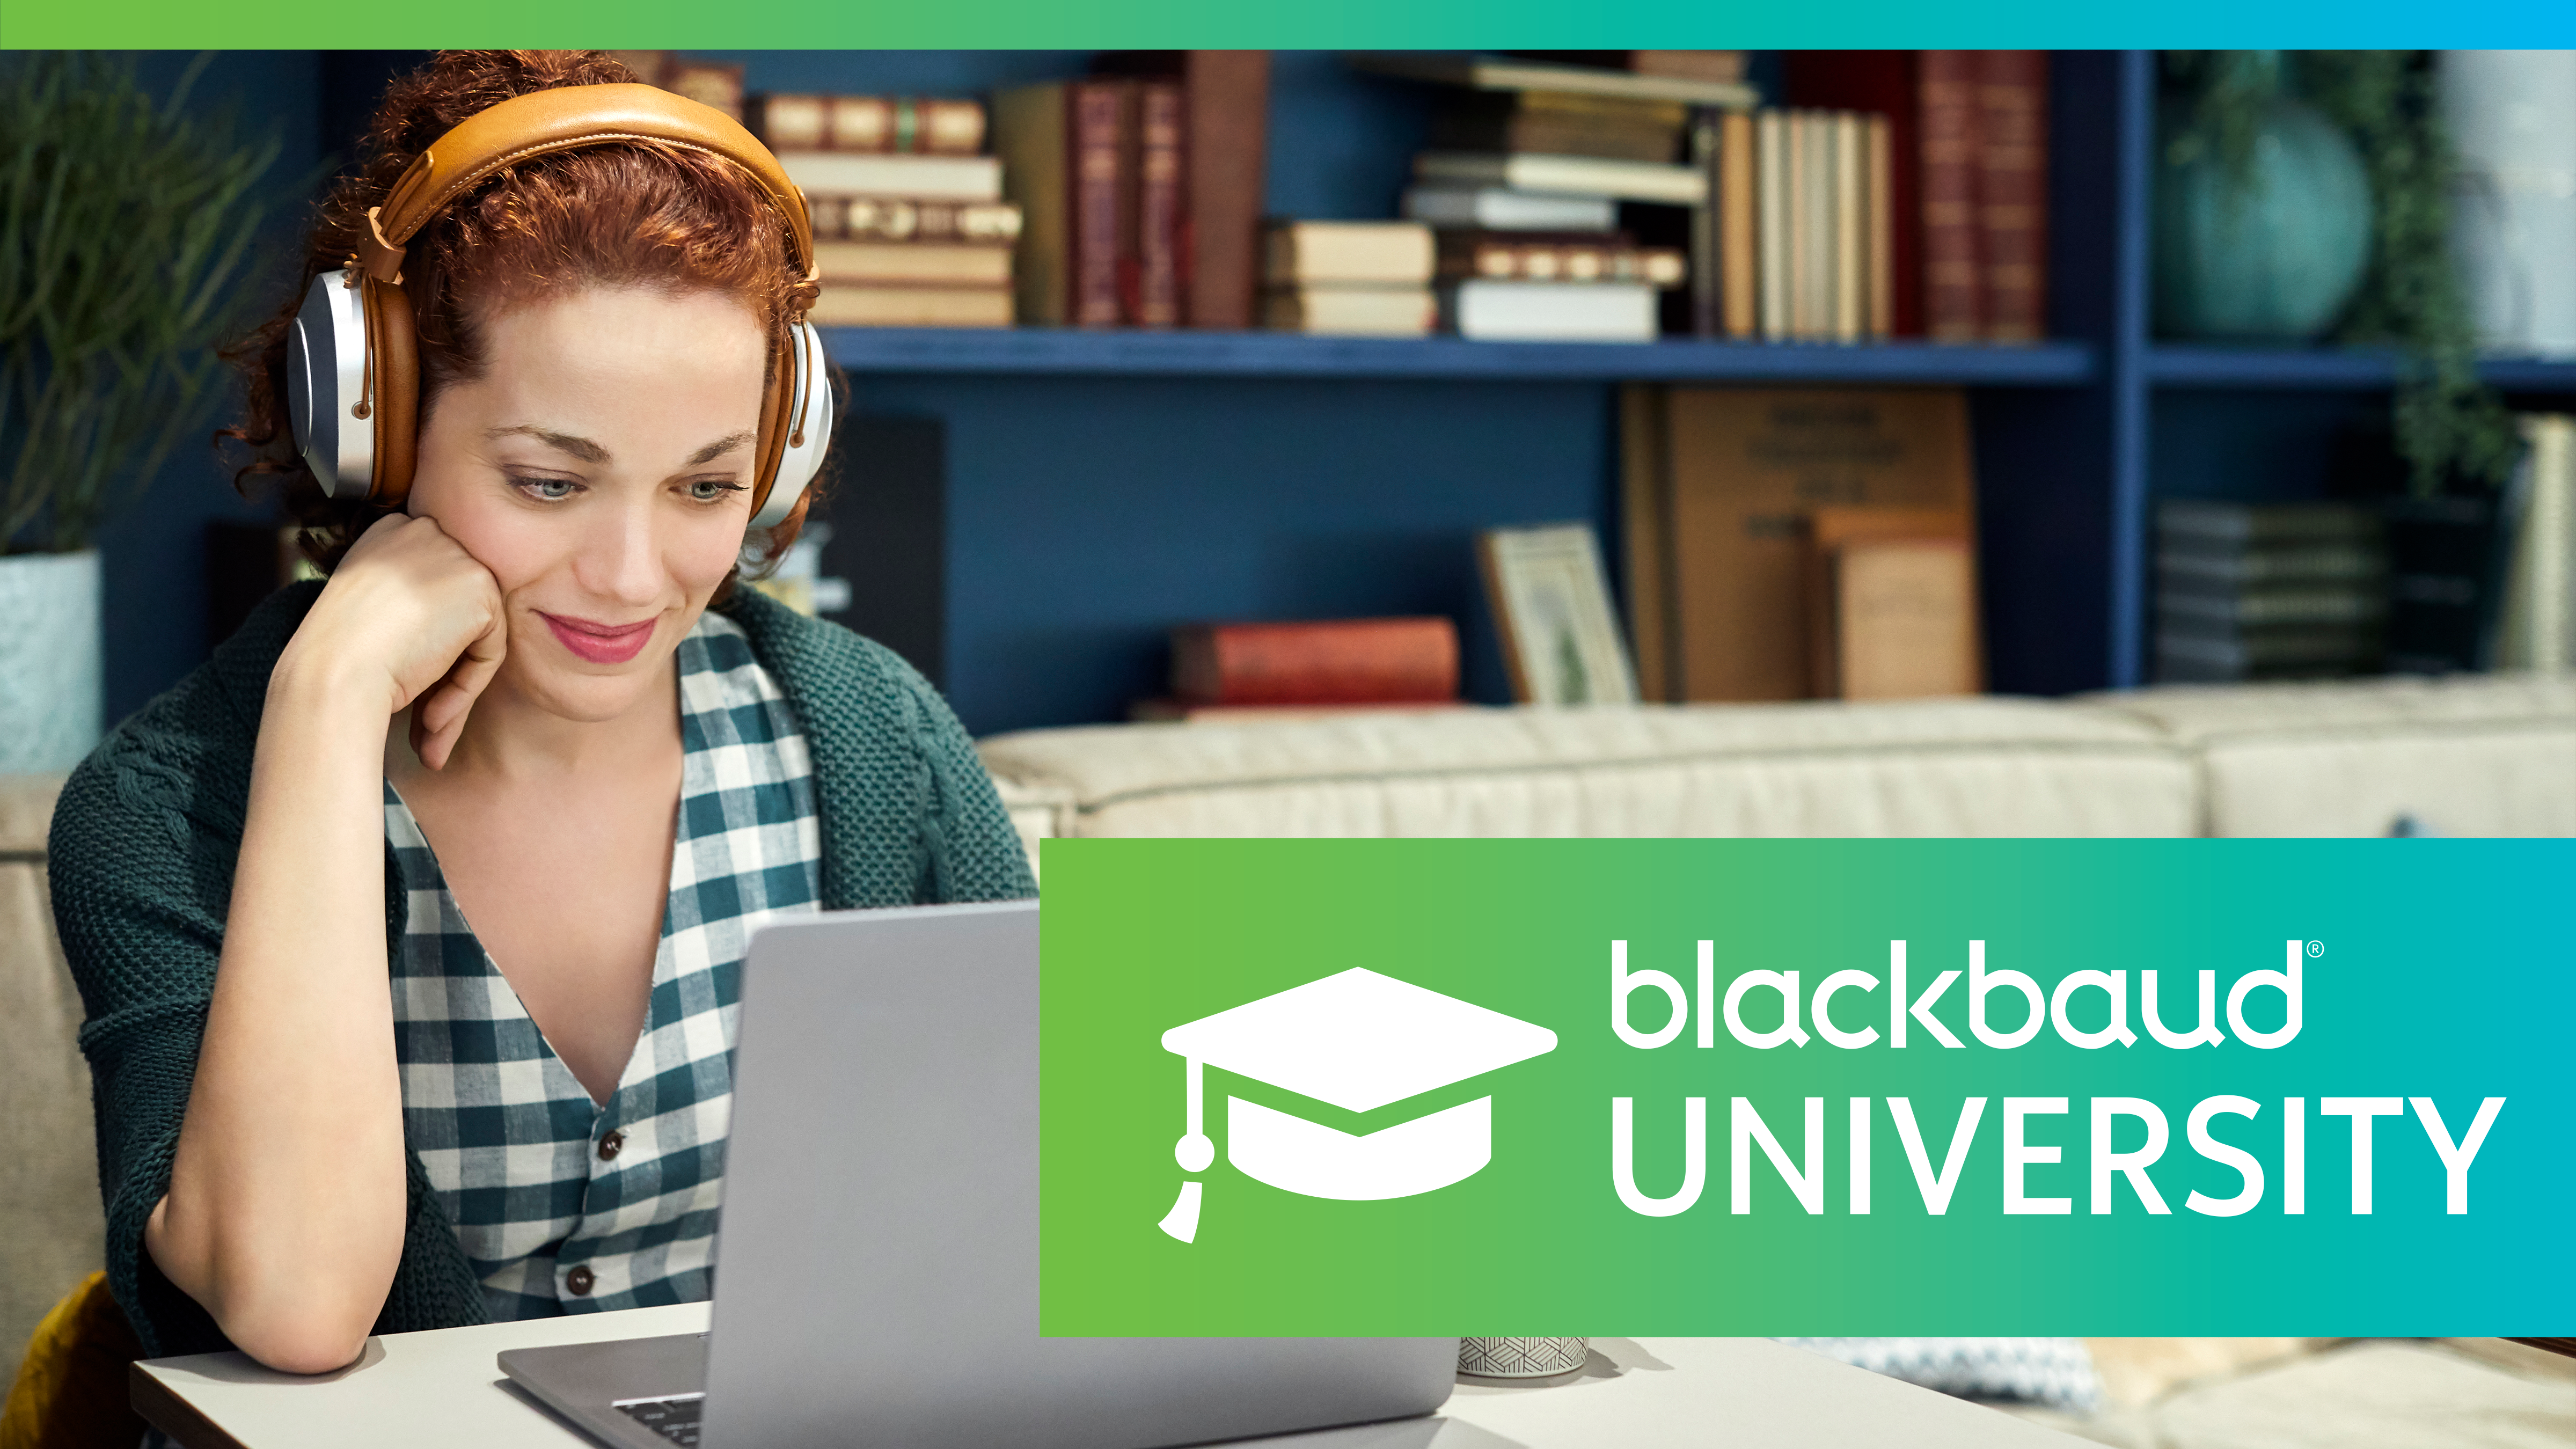 Get Ready for SKY View with Blackbaud University 7355